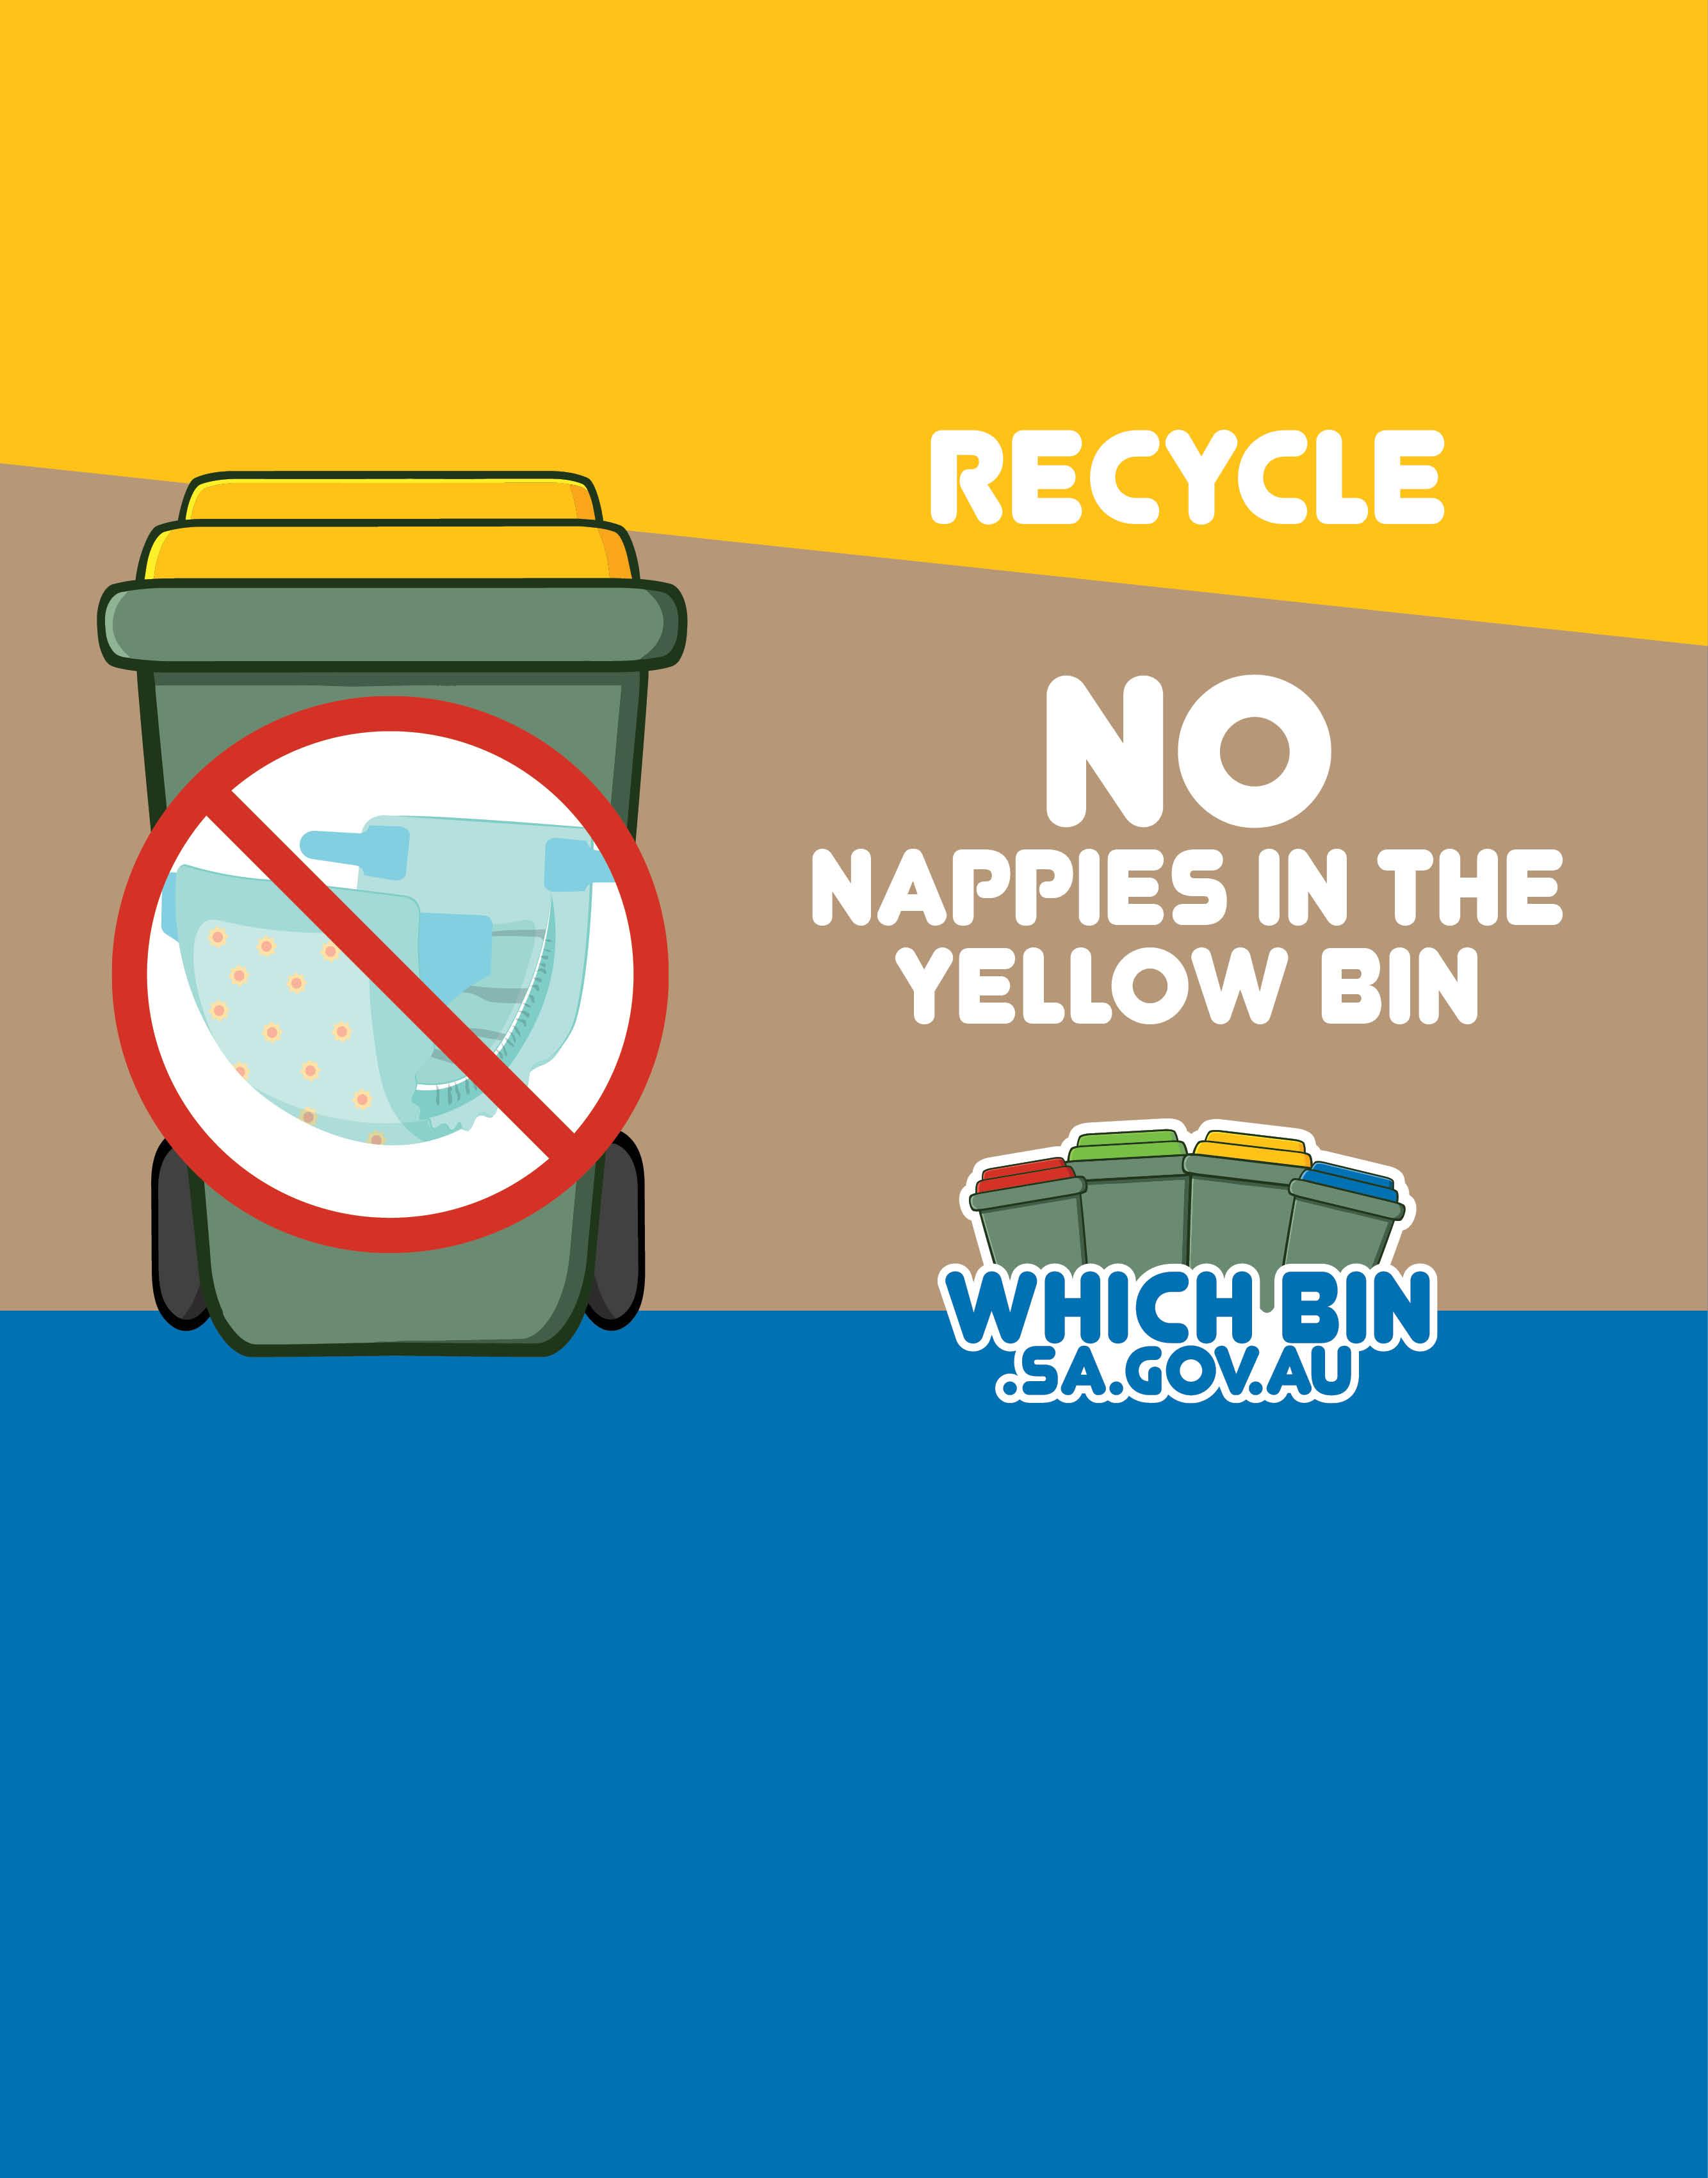 A Nappy in the recycle bin doesn't make anyone happy!